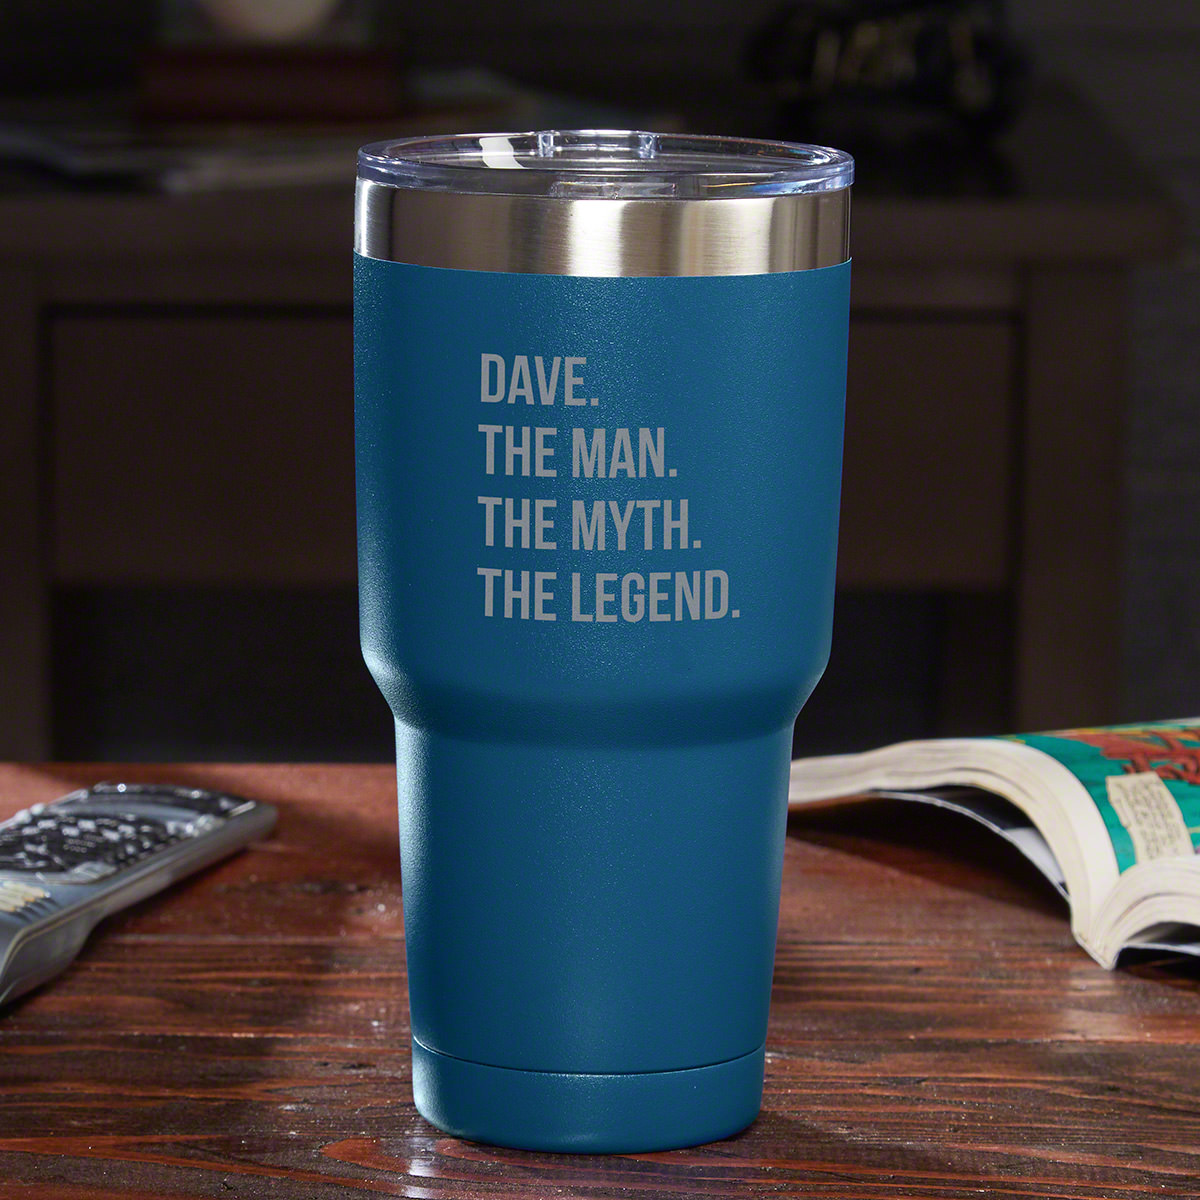 Not every man can be labeled an icon, but if you have one in your life, proclaim it loud & proud with our The Man The Myth The Legend personalized travel mug. This Yeti-style tumbler is made from robust 18/8 stainless steel. The double-wall, vacuum insul #mug